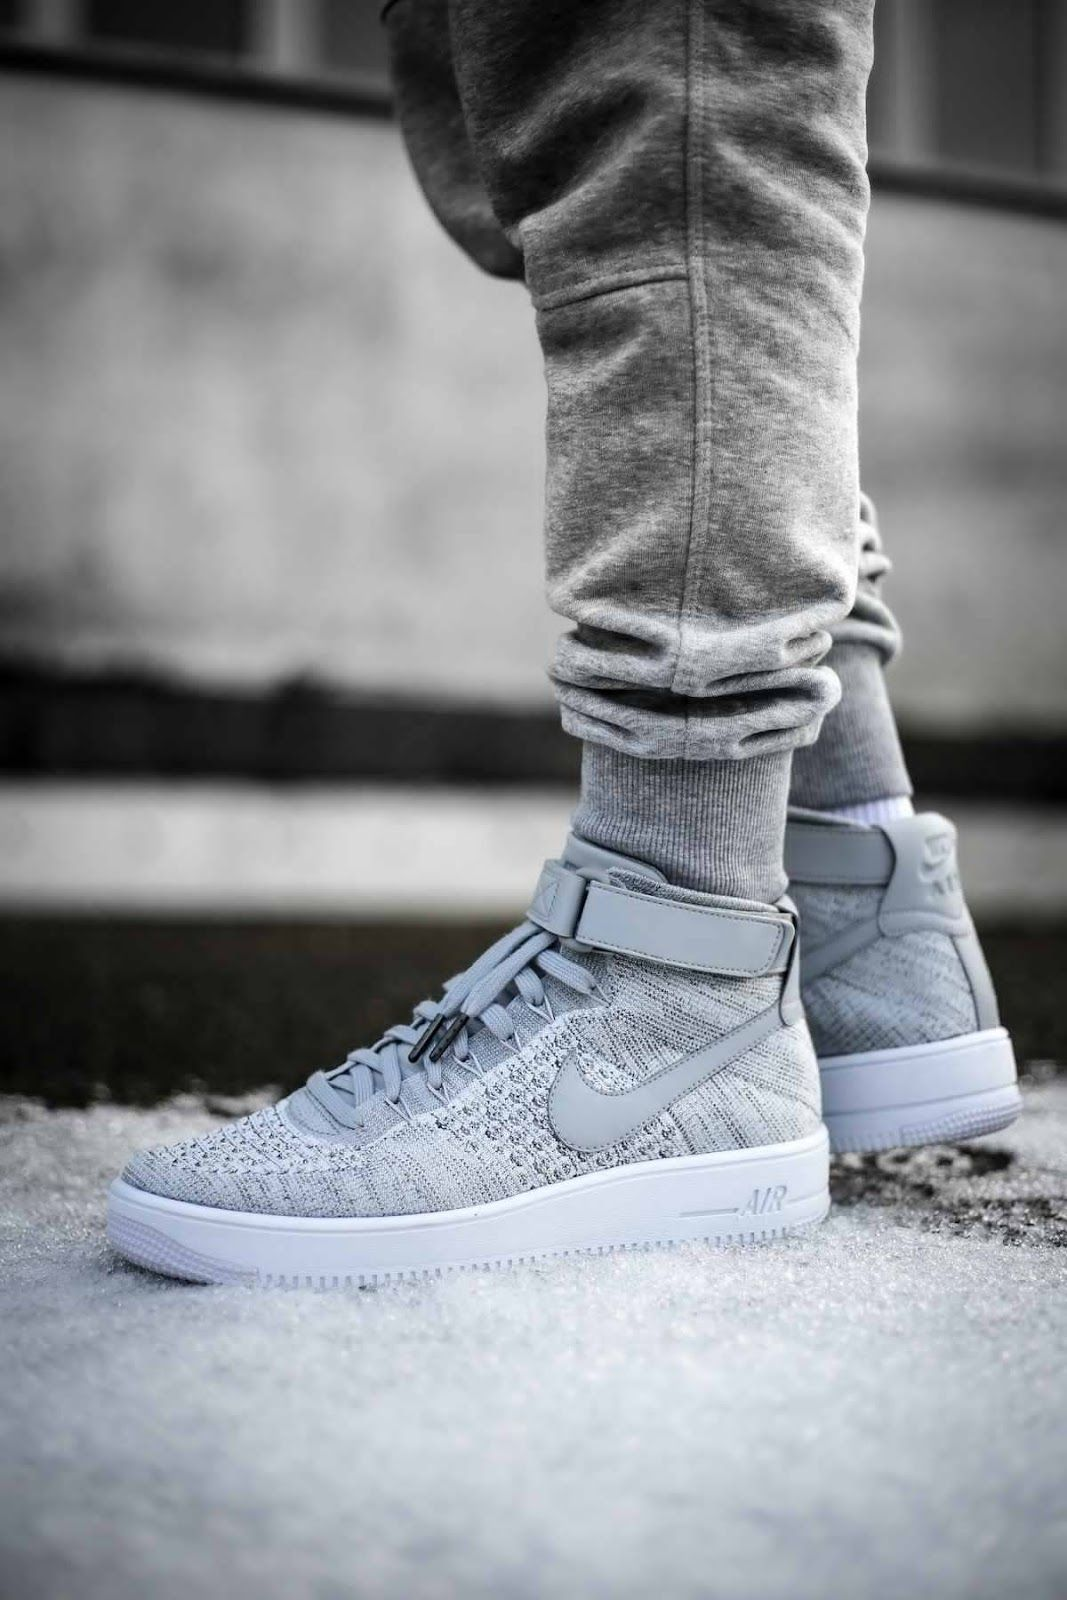 kicksonfire : Nike Air Force 1 Mid Flyknit 'Grey